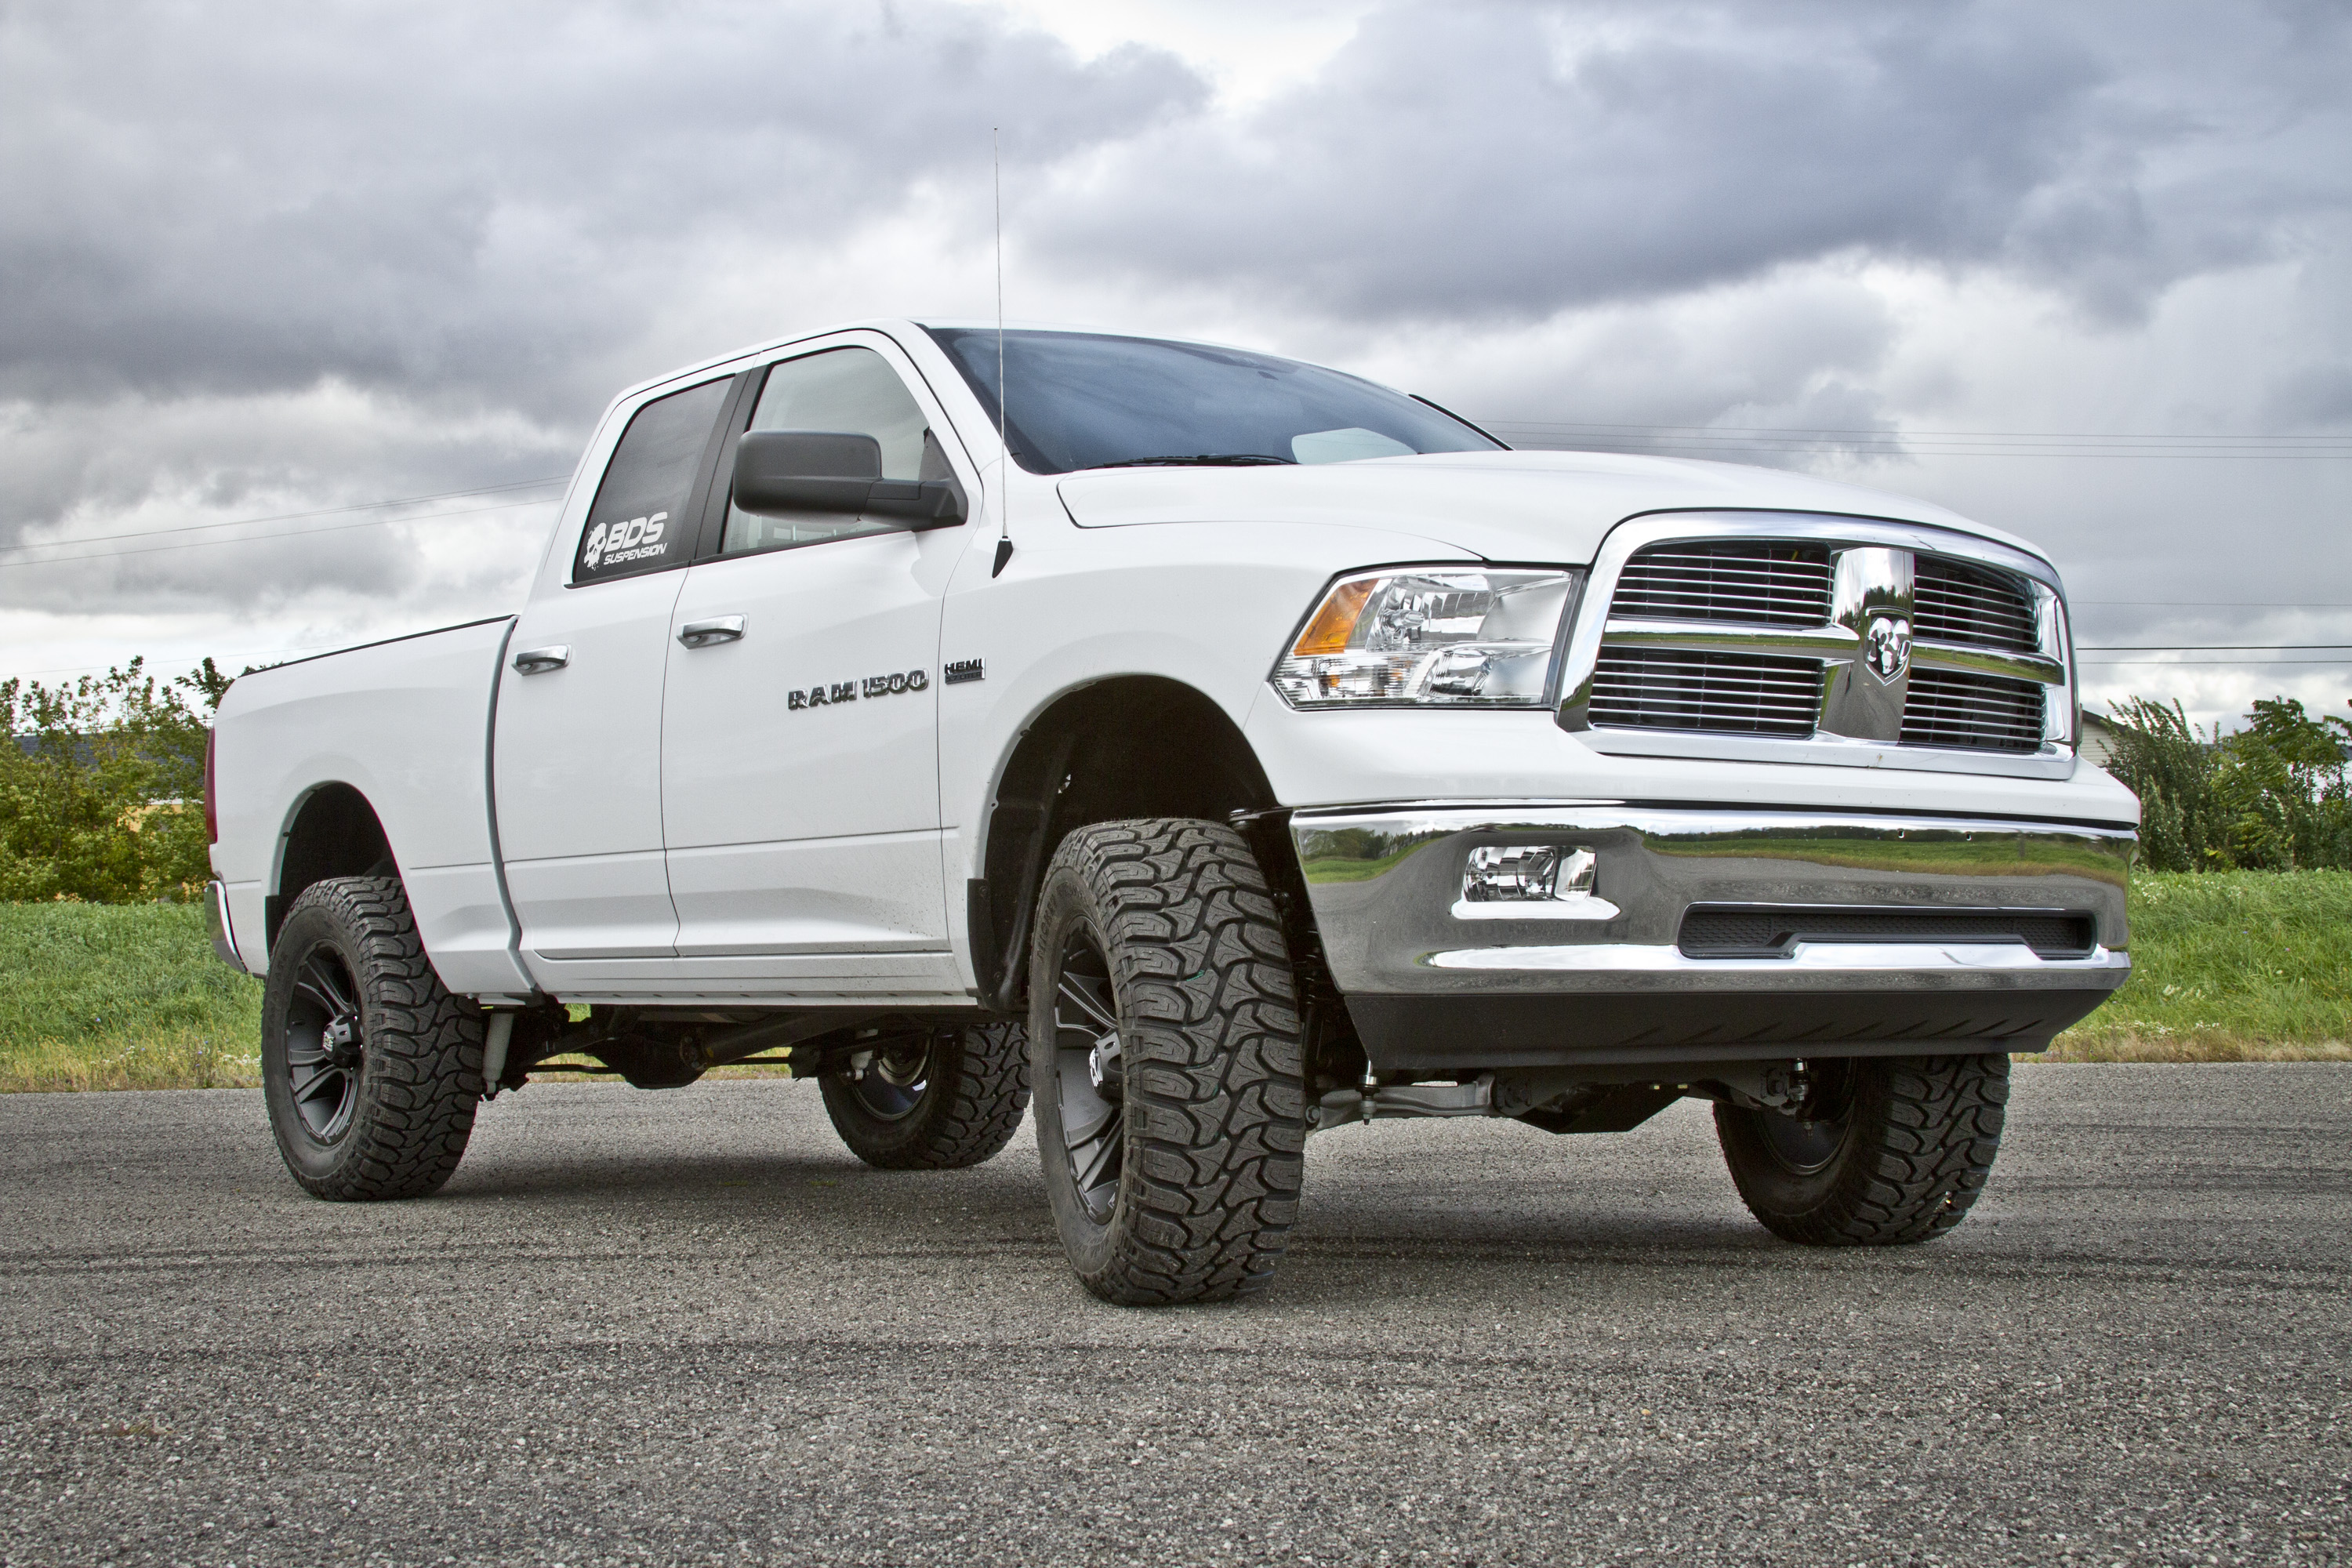 2015 dodge ram 1500 6 lift kit and 35s hires image dodge_1500_15w_6in_cjpg - Dodge Truck 2015 Lifted